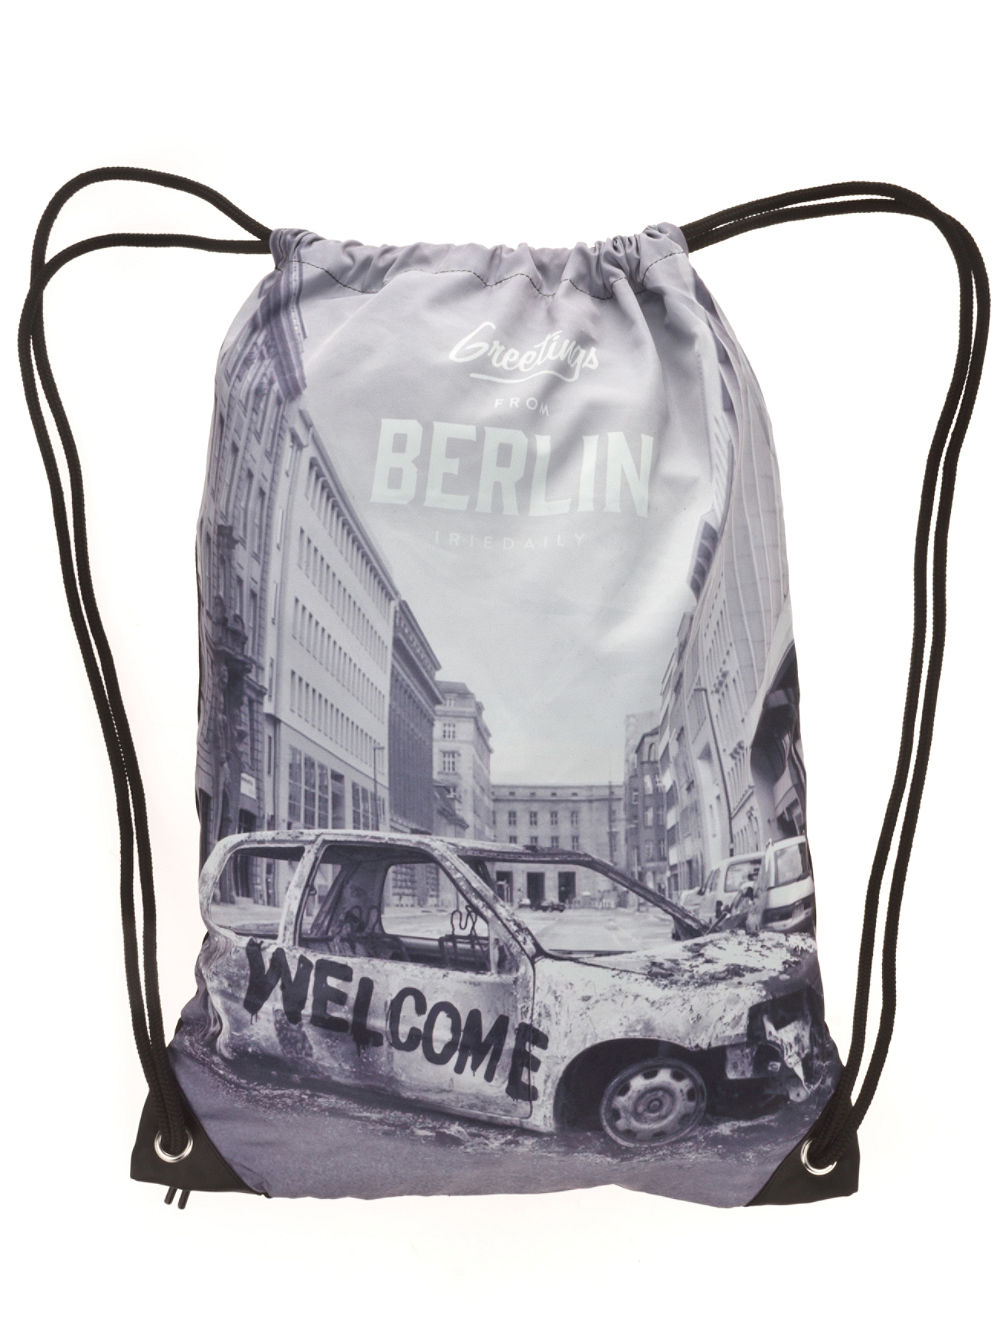 greetings-beutel-gymbag